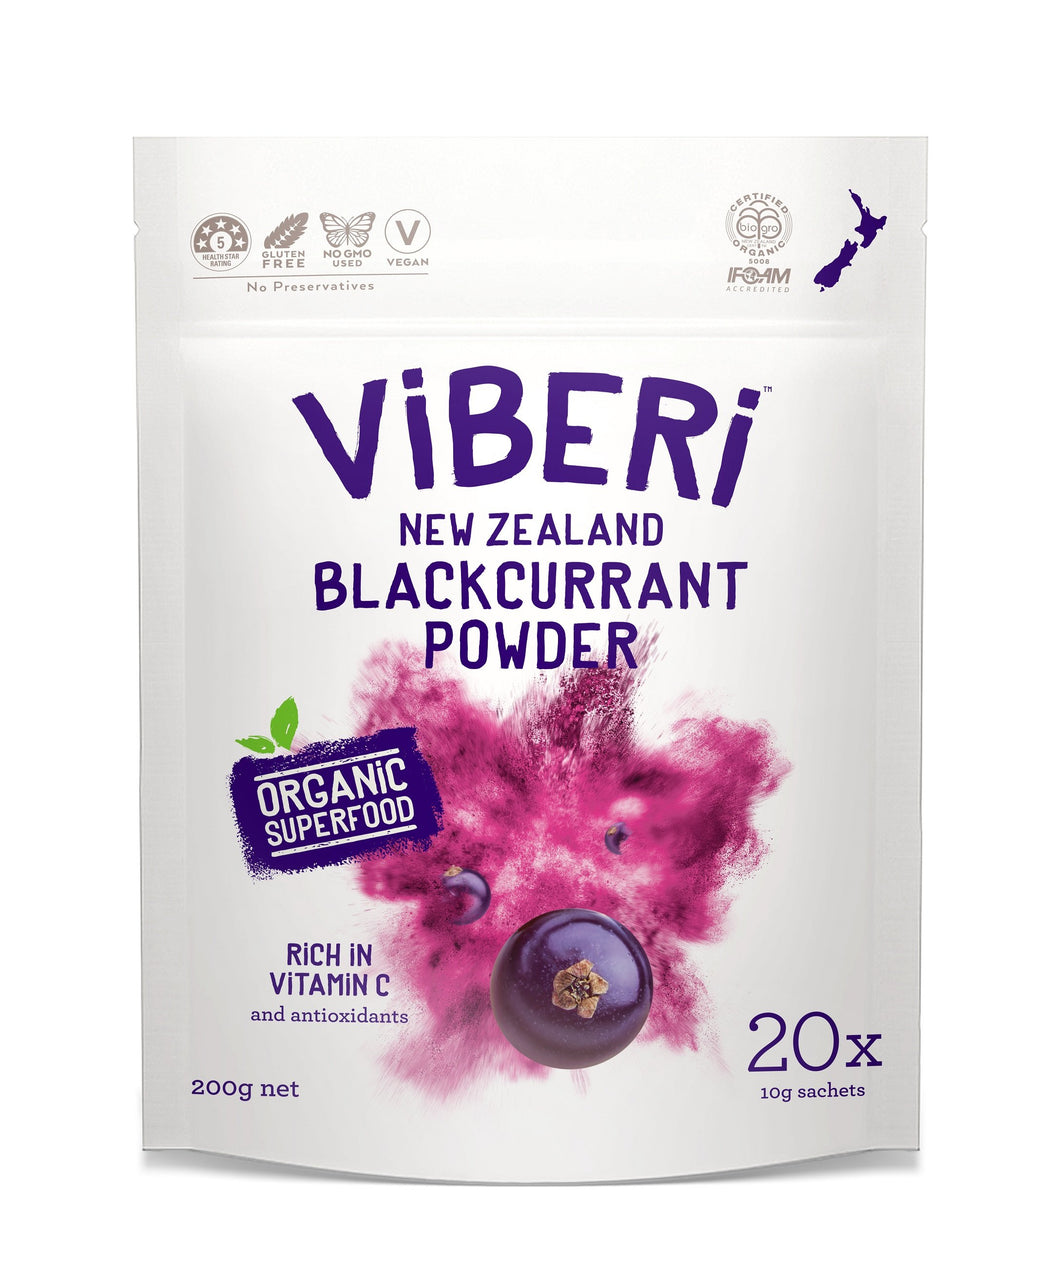 有機JAS カシスパウダー 200g - ViBERi Organic Blackcurrant Powder - (10g * 20 Sachets)